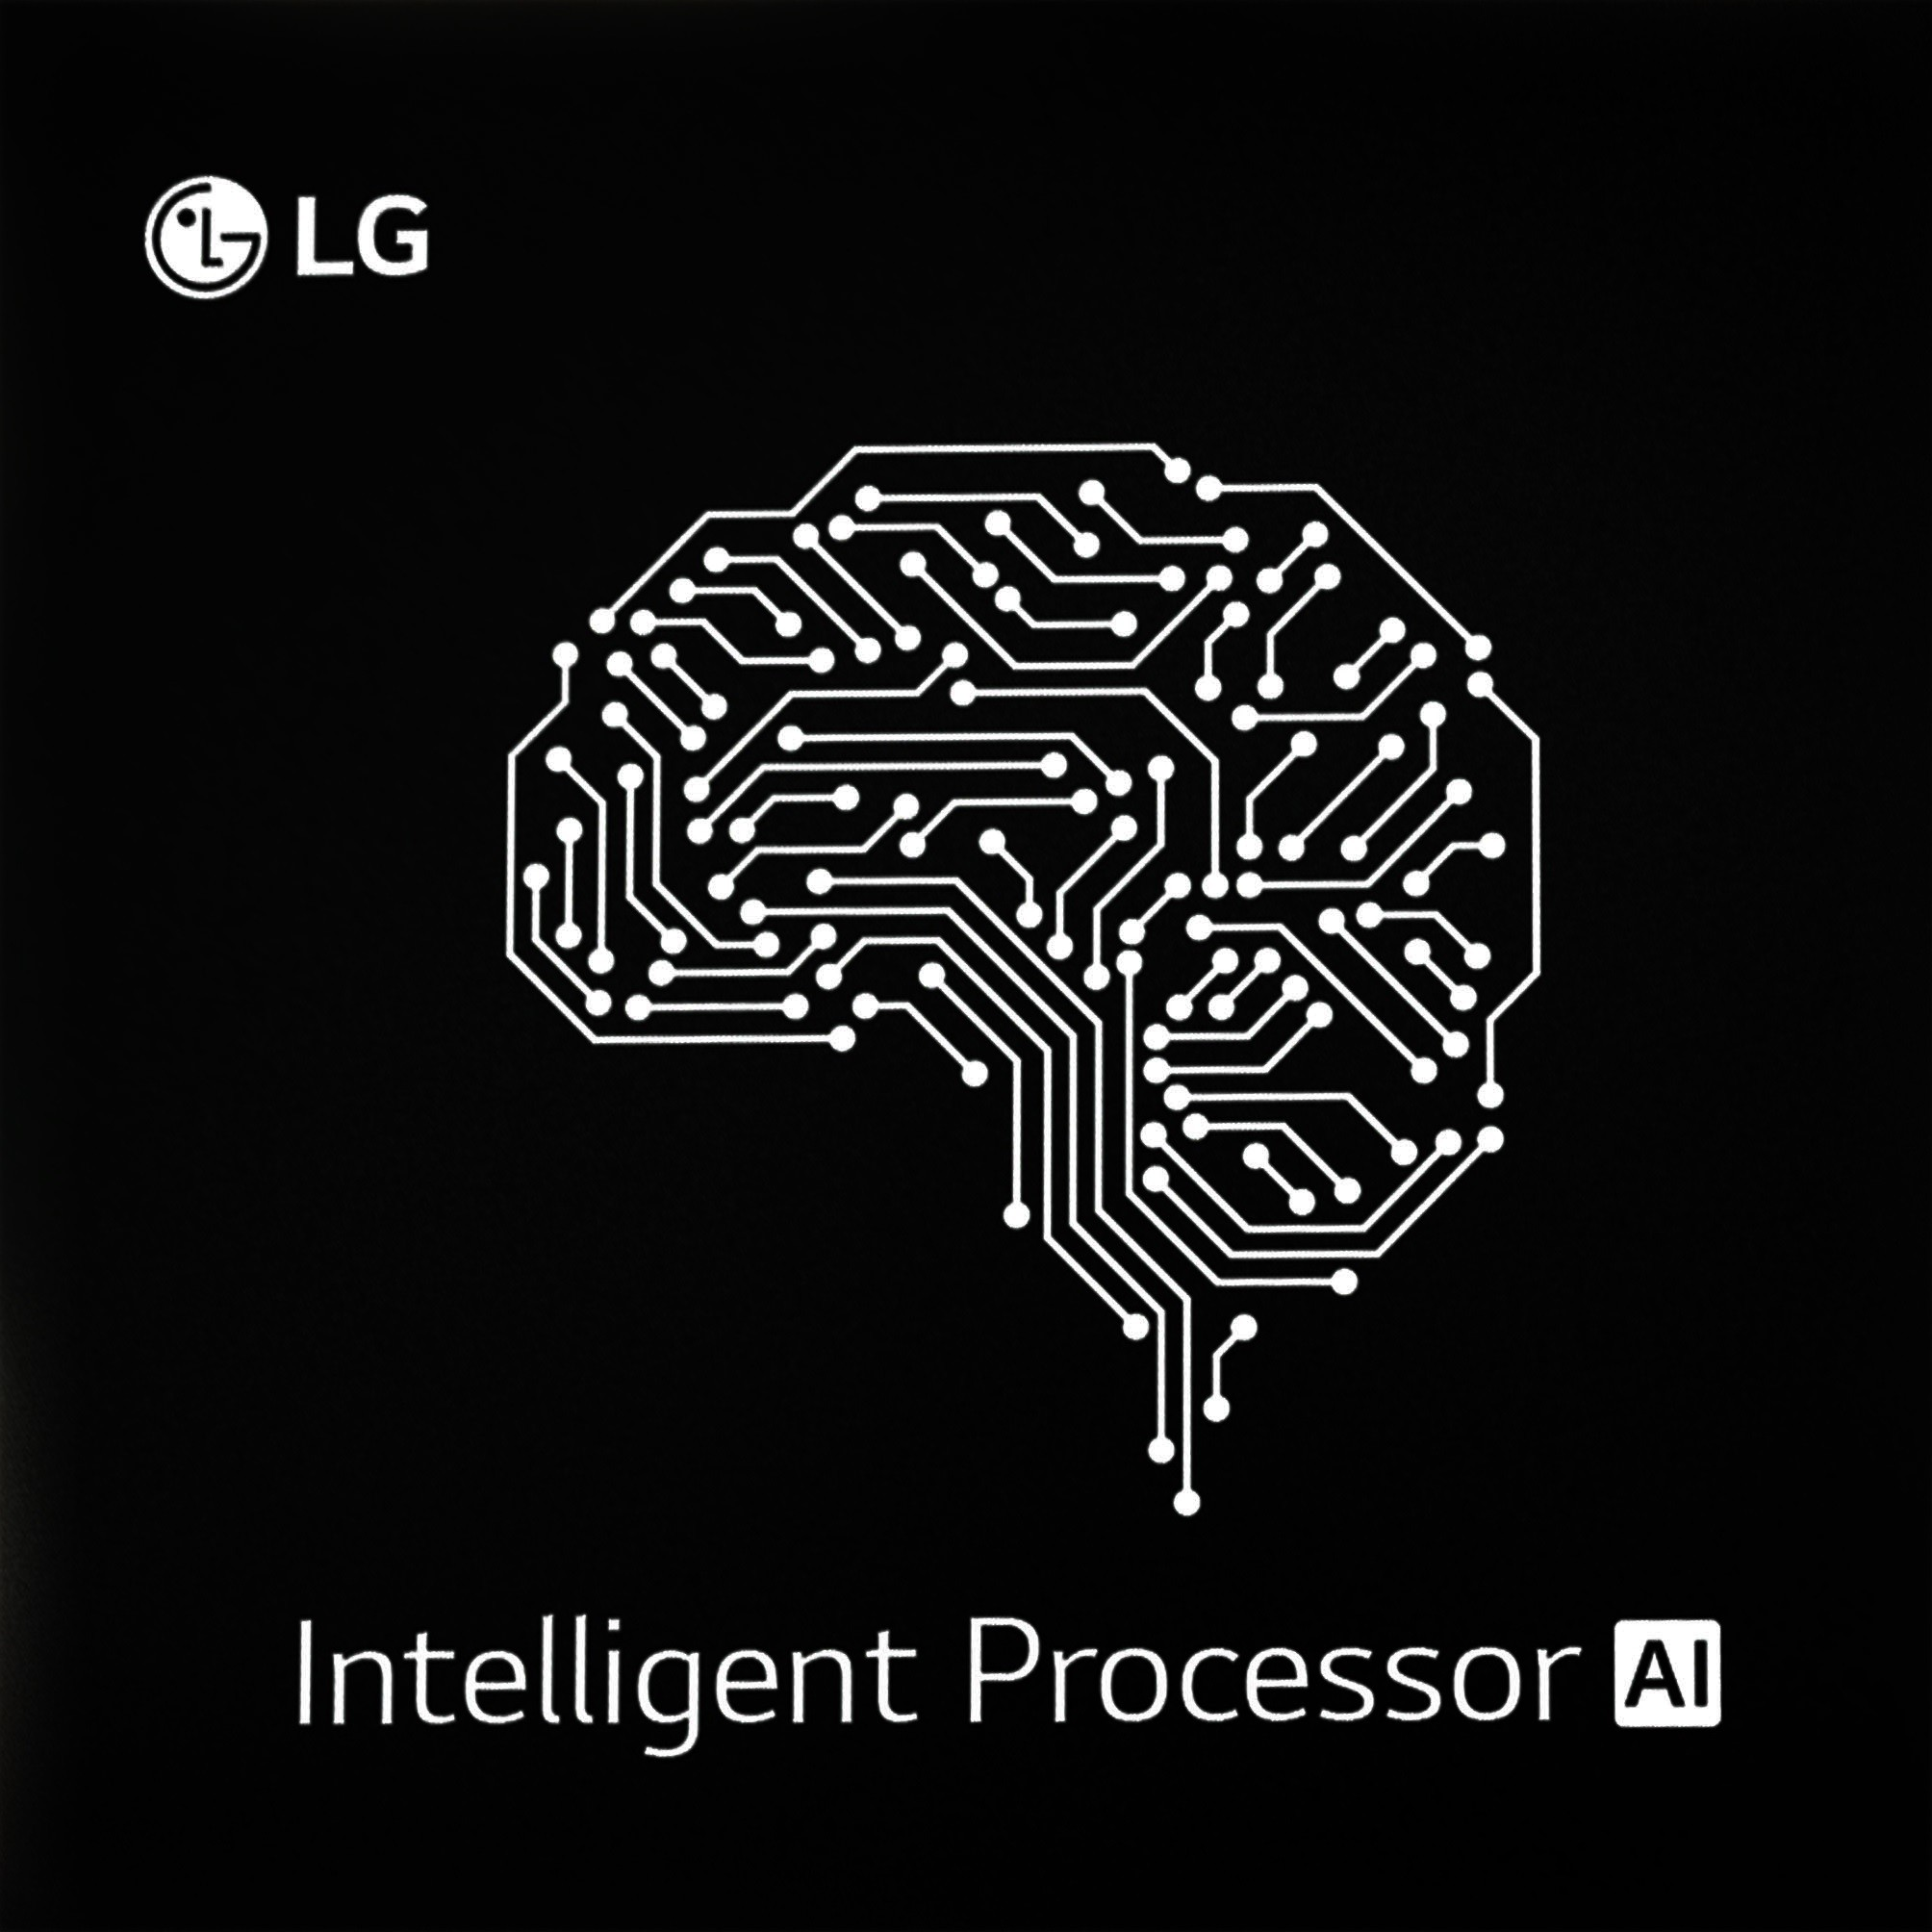 The logo of LG's Intelligent Processor AI Chip.